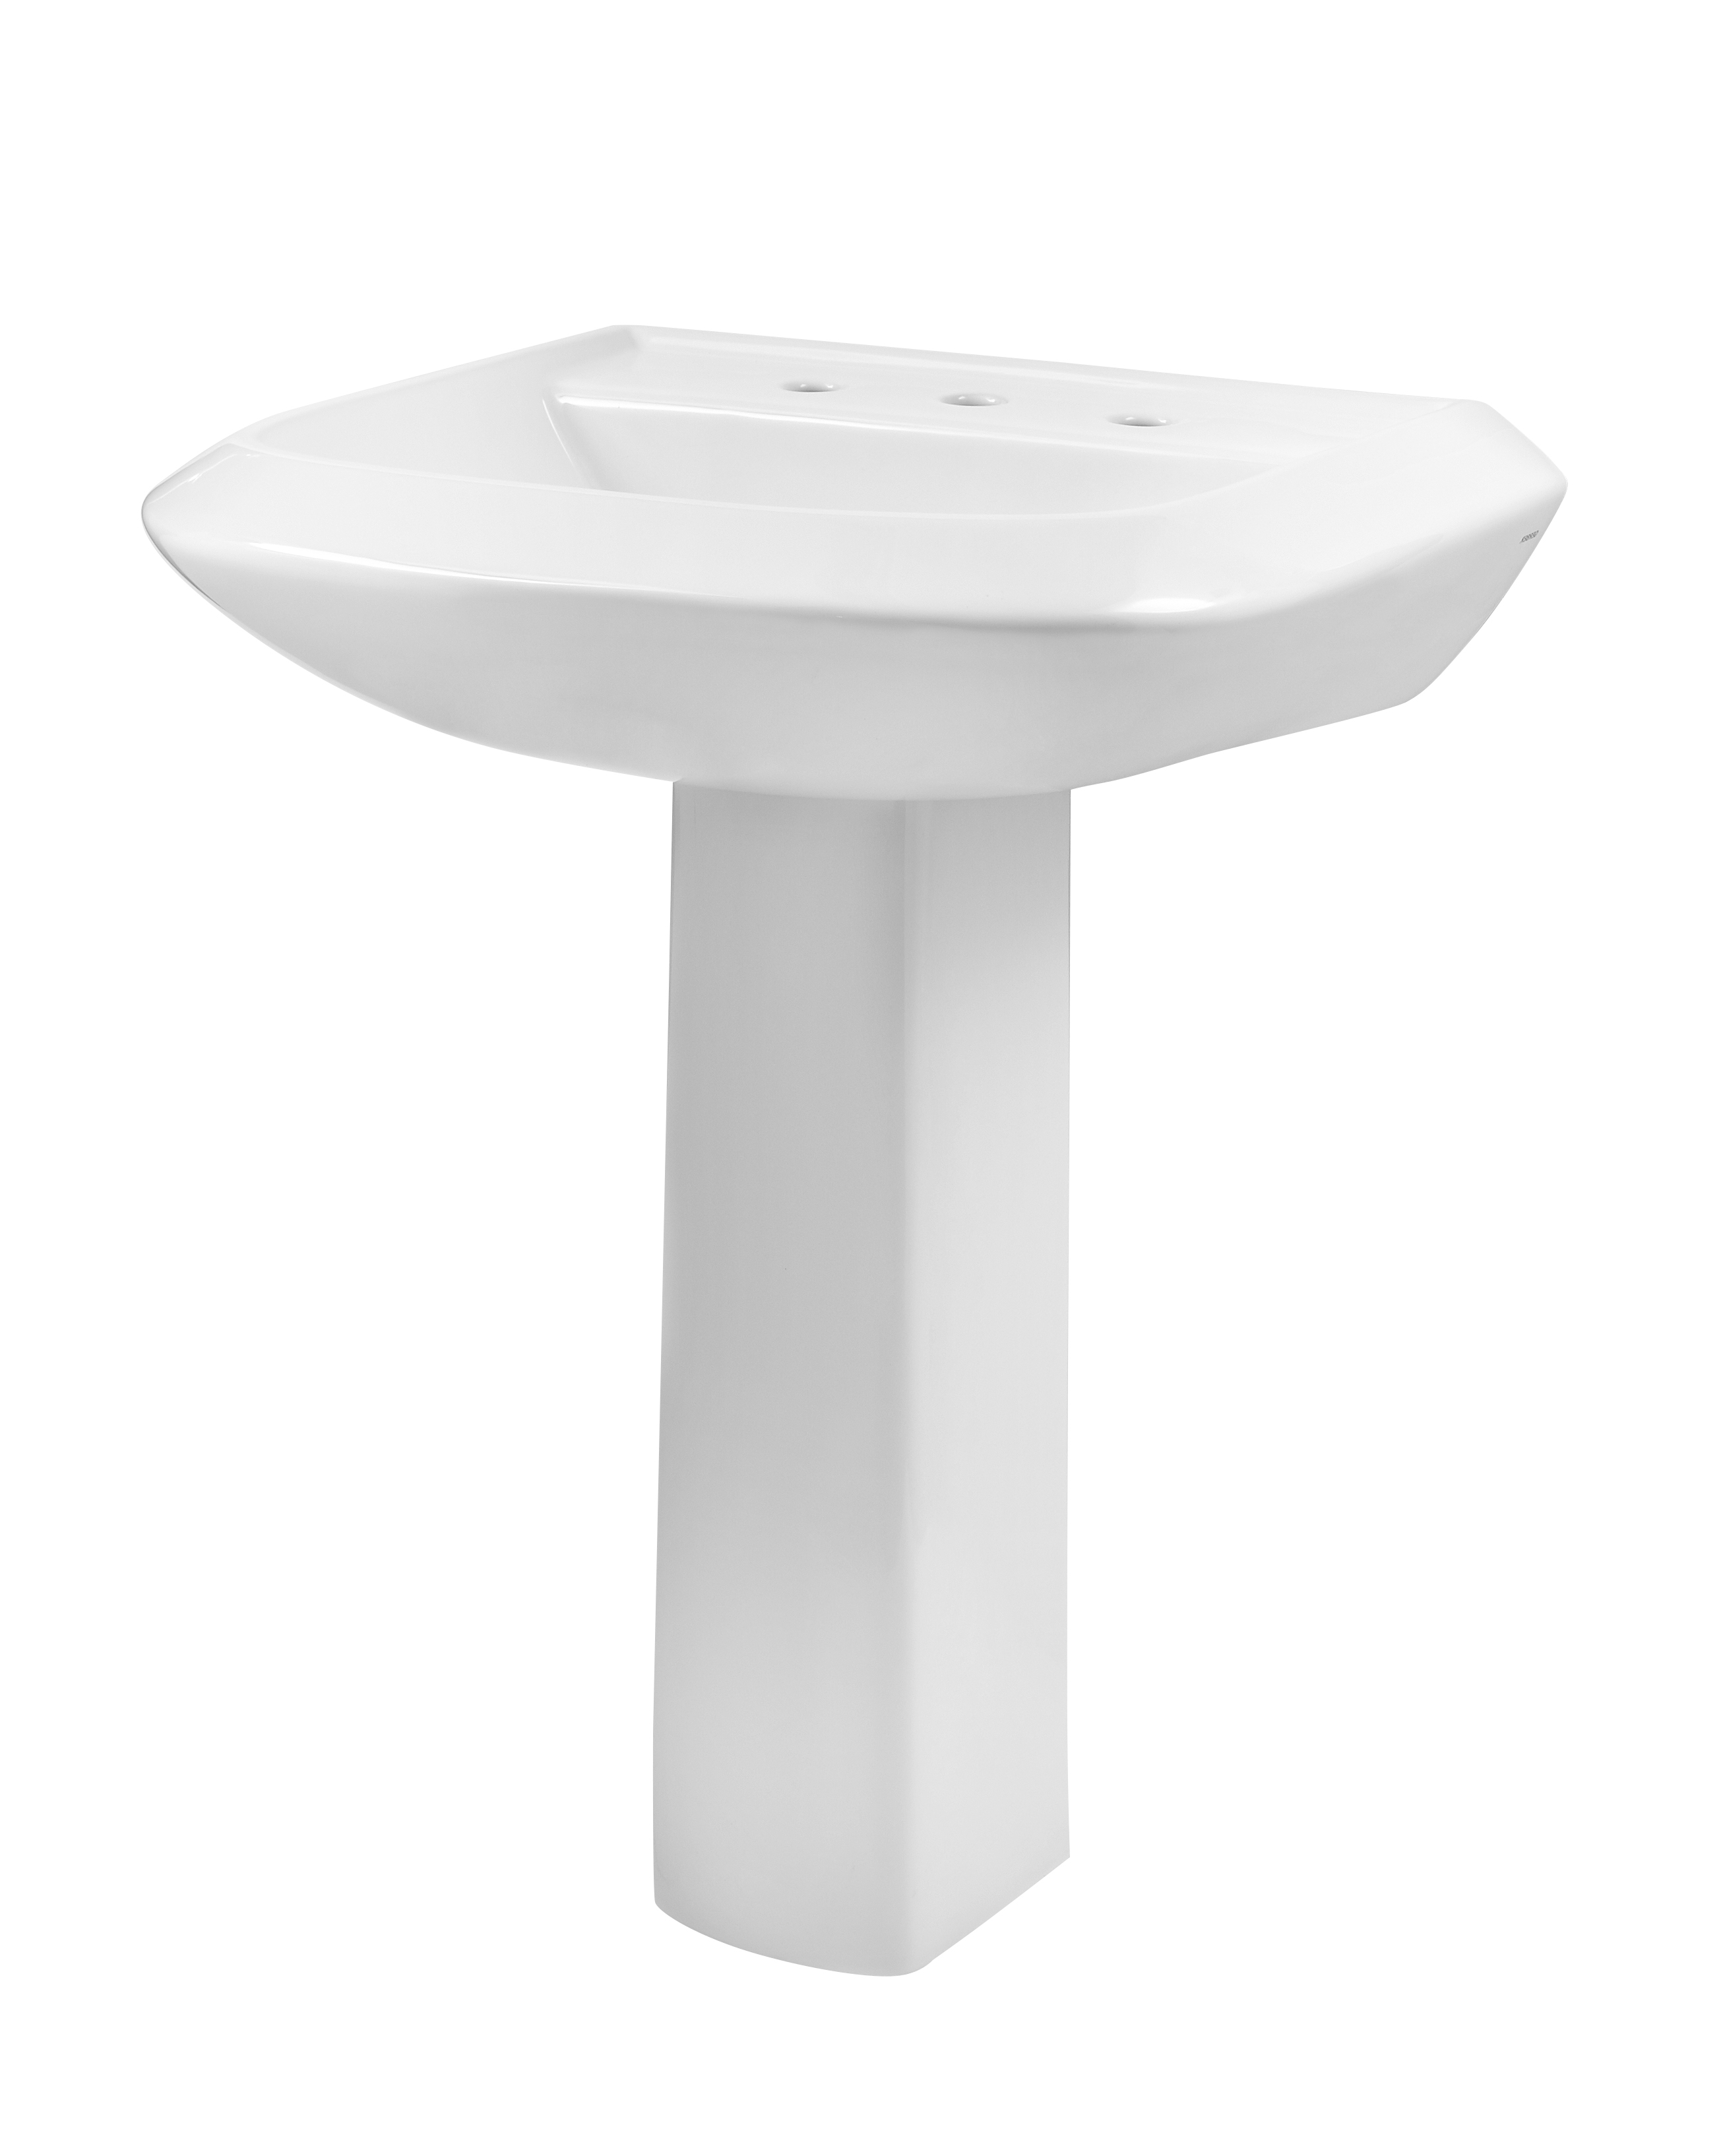 sinks homeclick compliant ada bathroom white sink icera l duravit by pedestal julian view larger